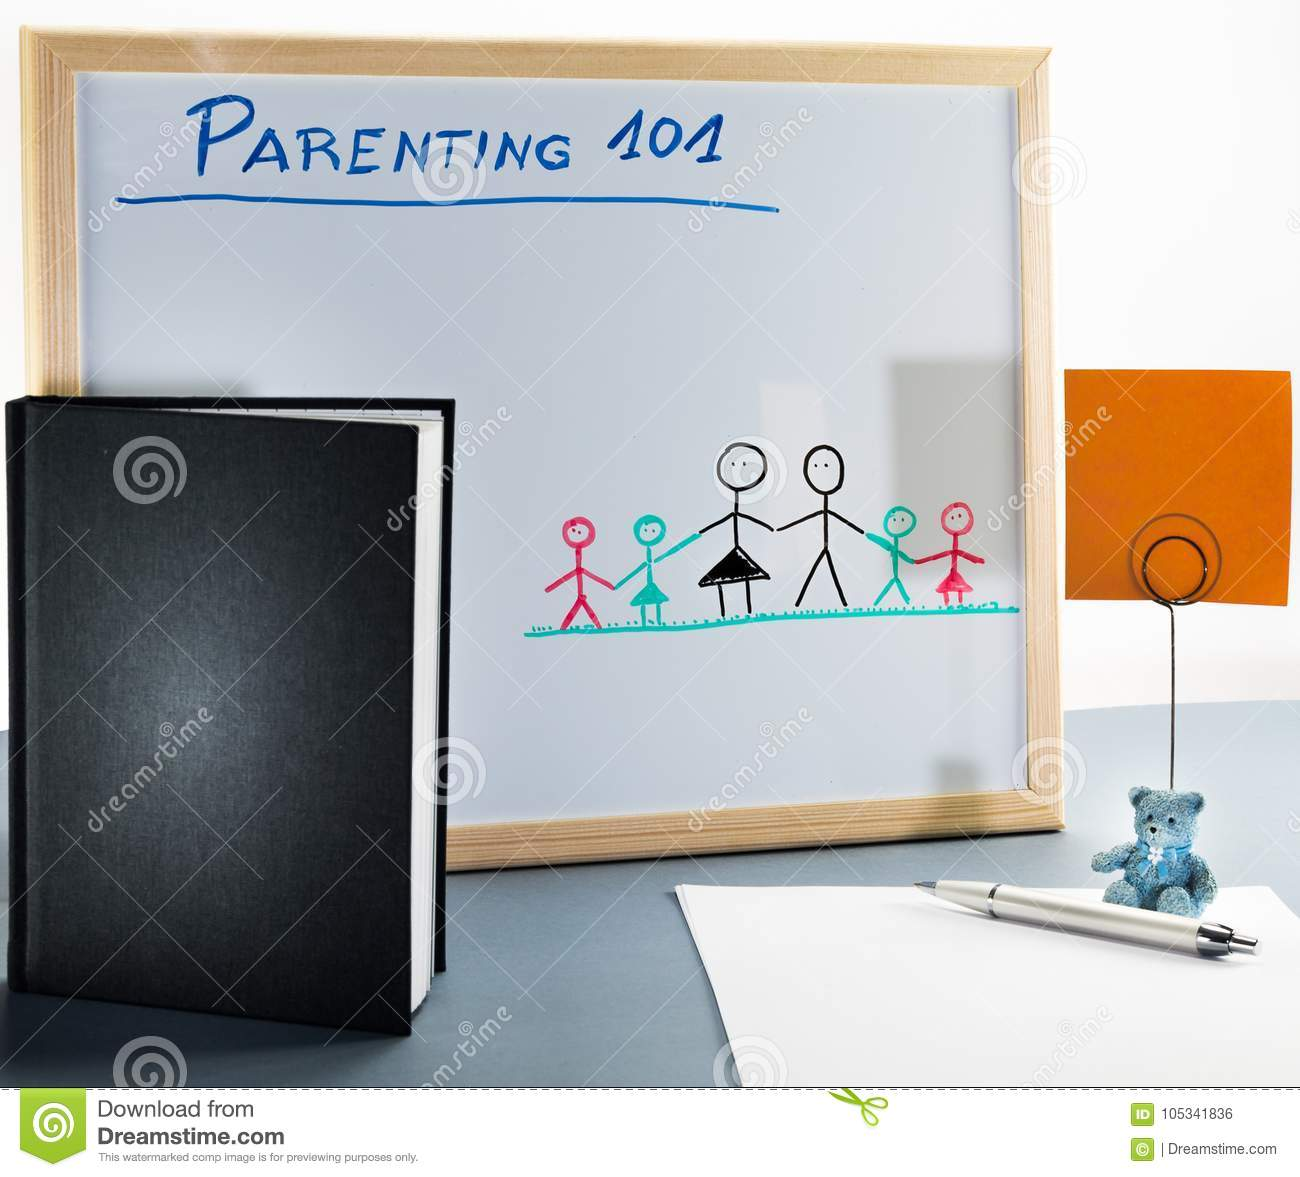 A whiteboard used for parenting classes and sex education in highschool or university.